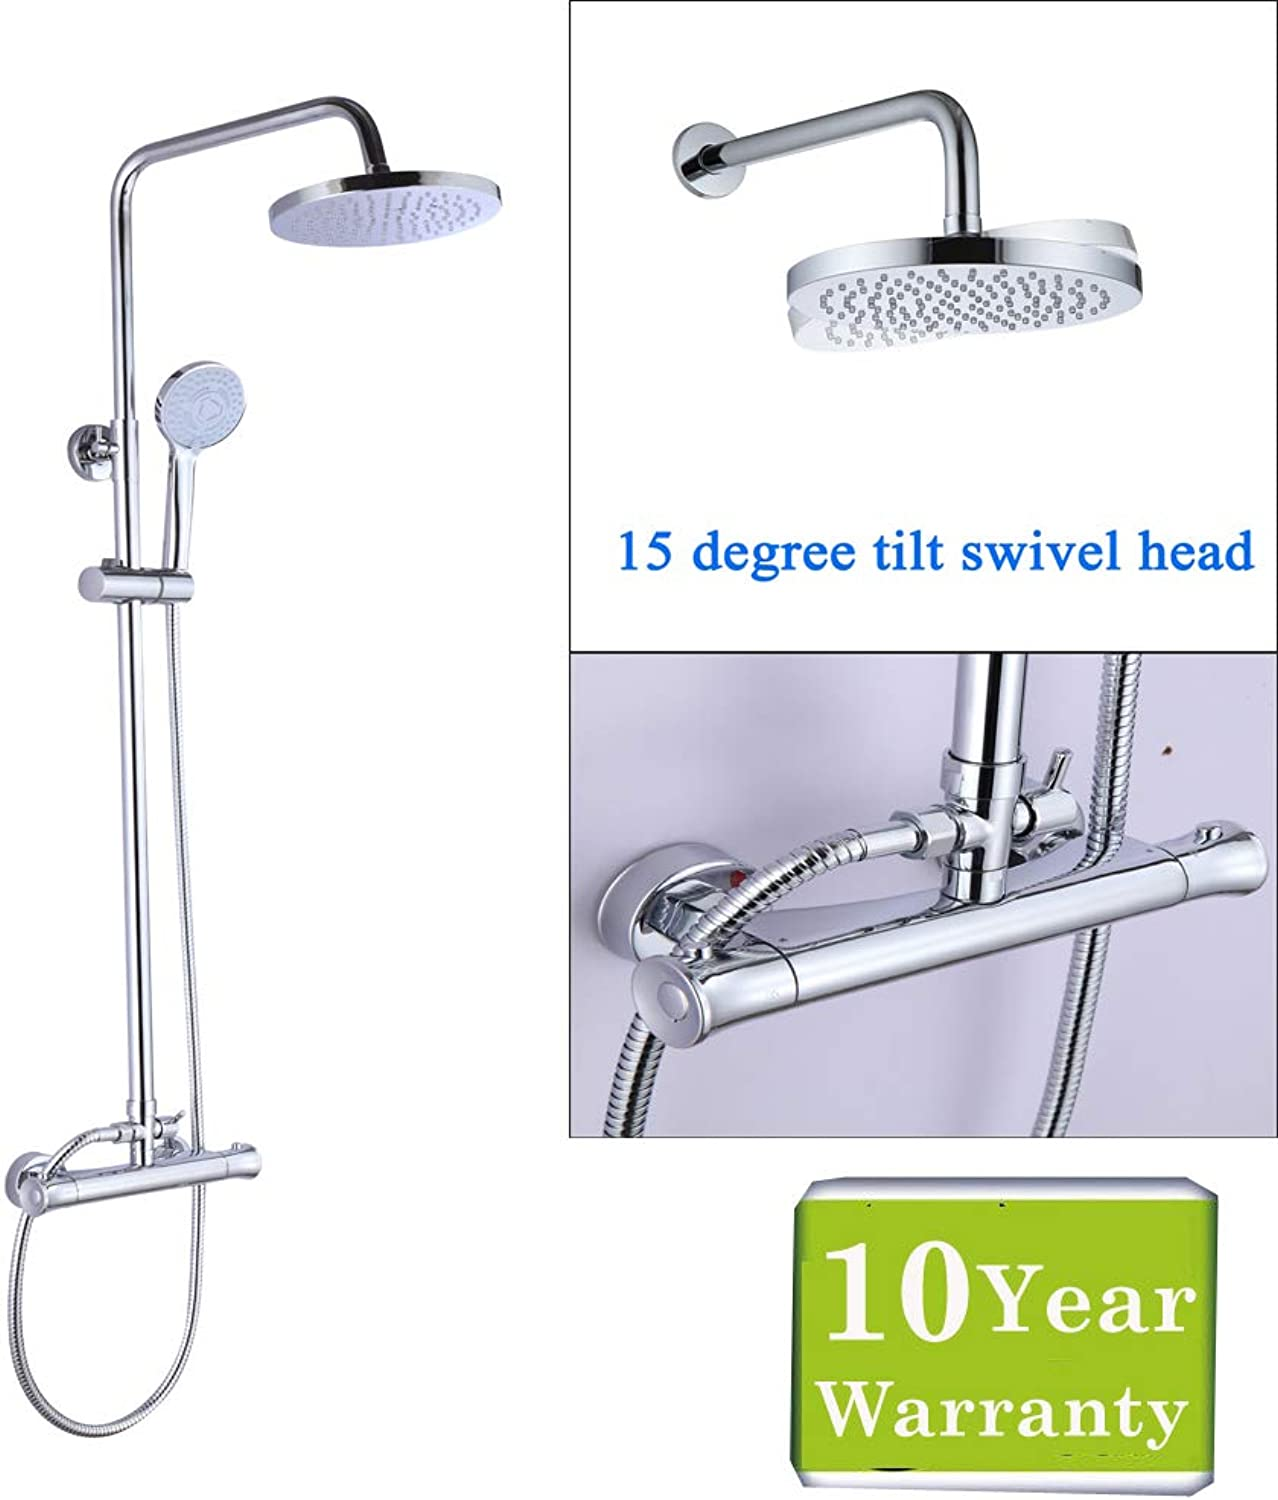 Thermostatic Bath Shower Mixer Tap Adjustable Riser Rail Round Twin Head Chrome Finish Solid Brass Air-in Save Water for Bathroom